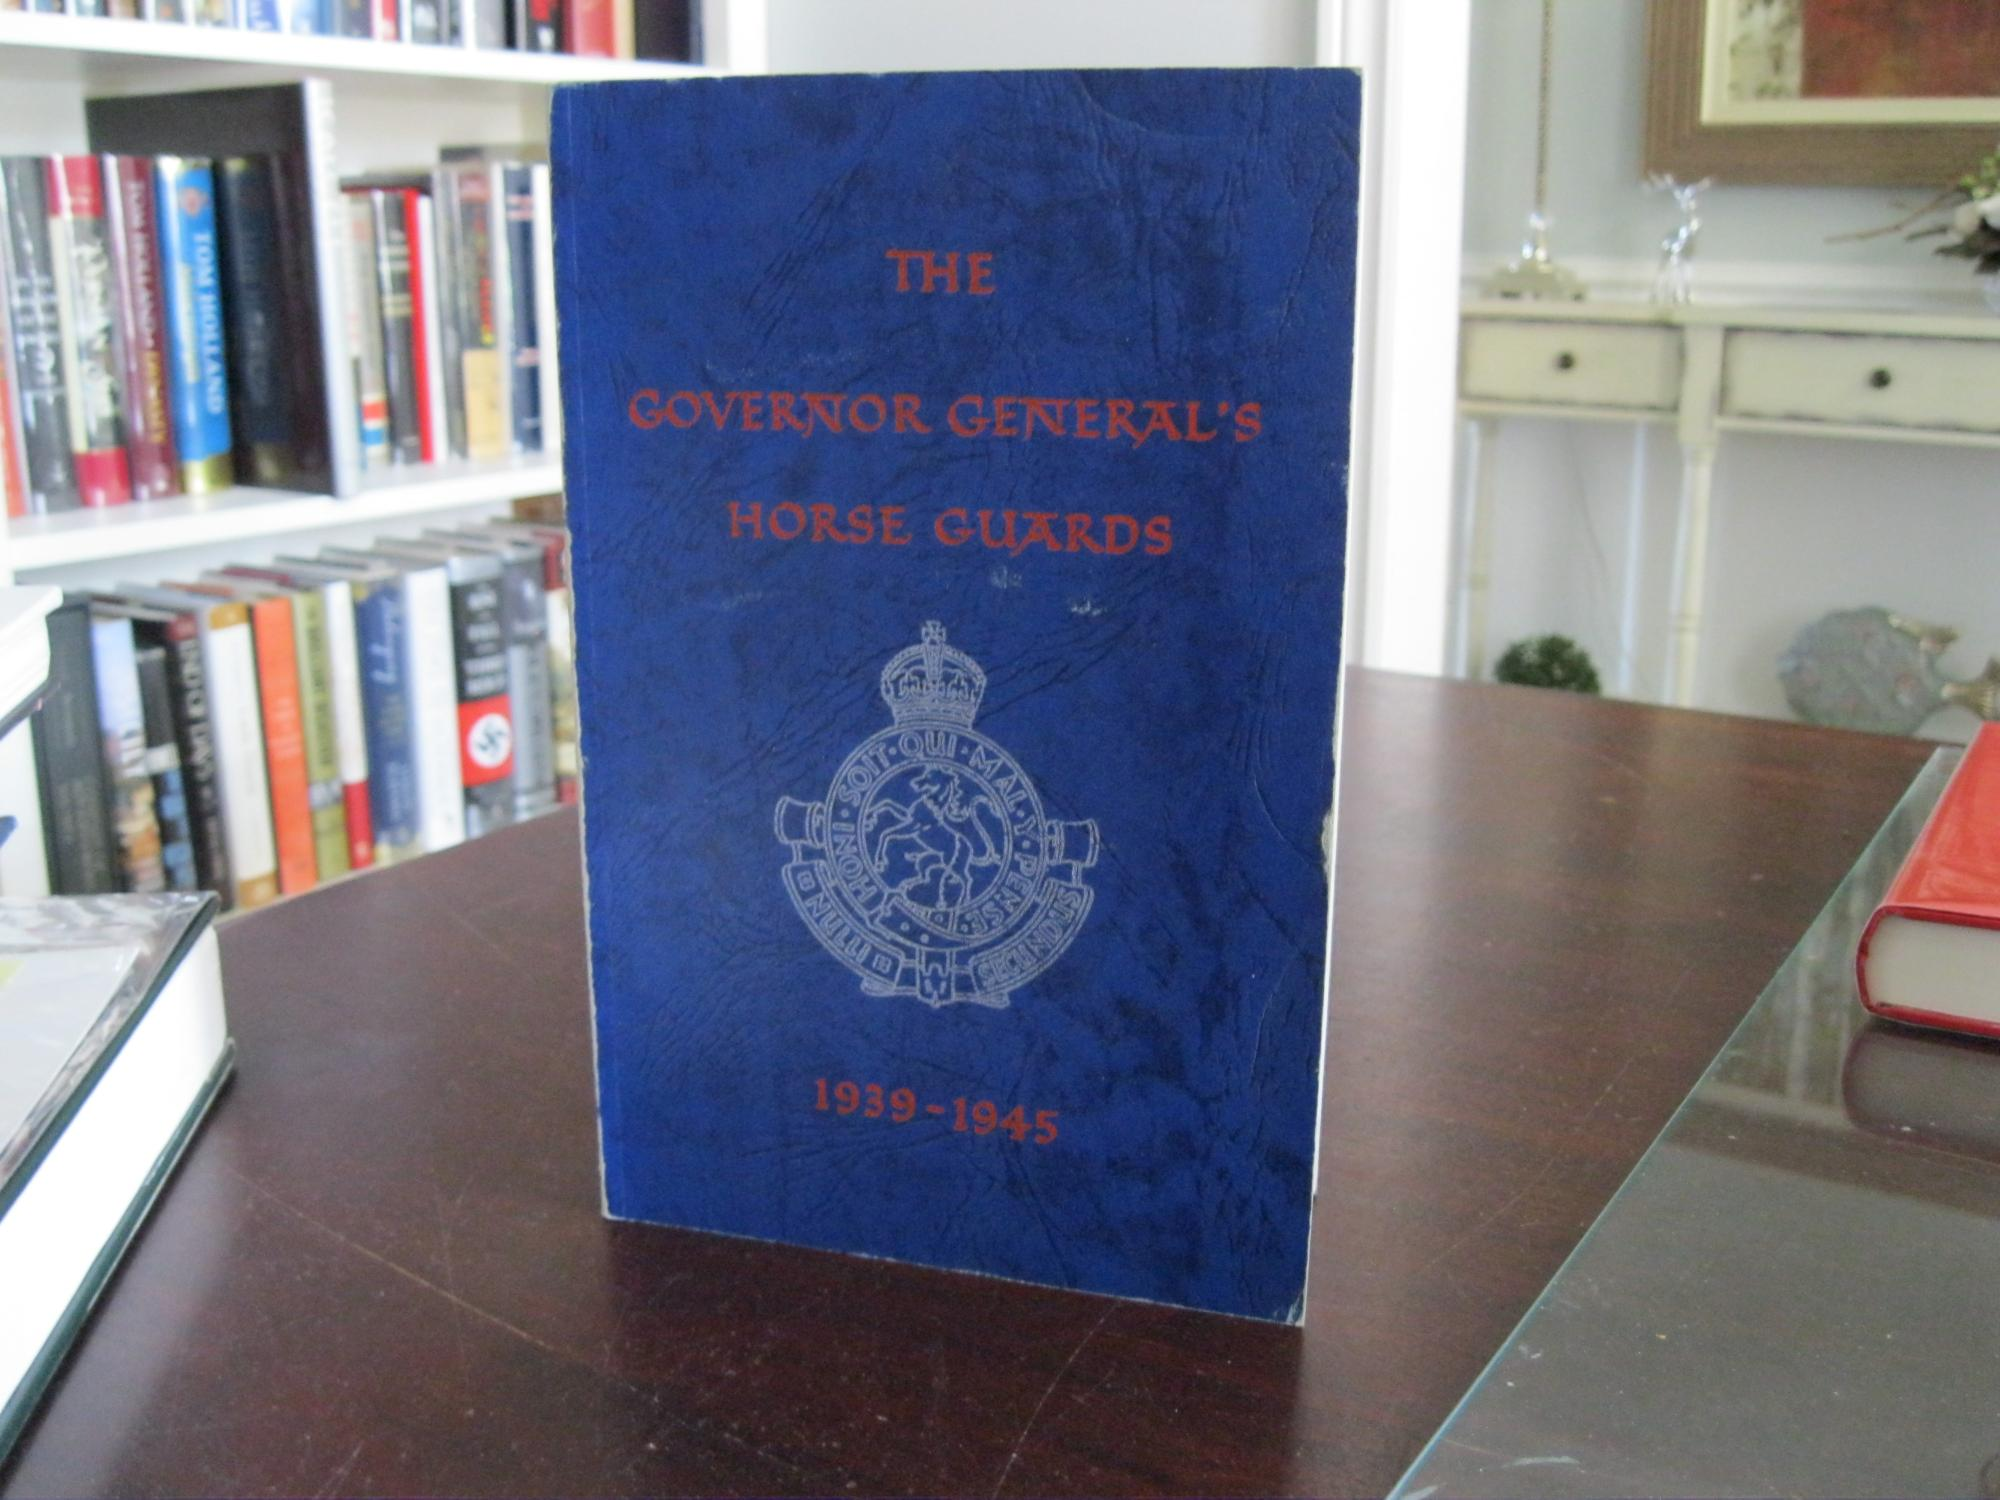 THE_GOVERNOR_GENERAL'S_HORSE_GUARDS_1939-1945_LOCKE,_Lieut.-Col._R.P._(Foreword)_[Very_Good]_[Softcover]